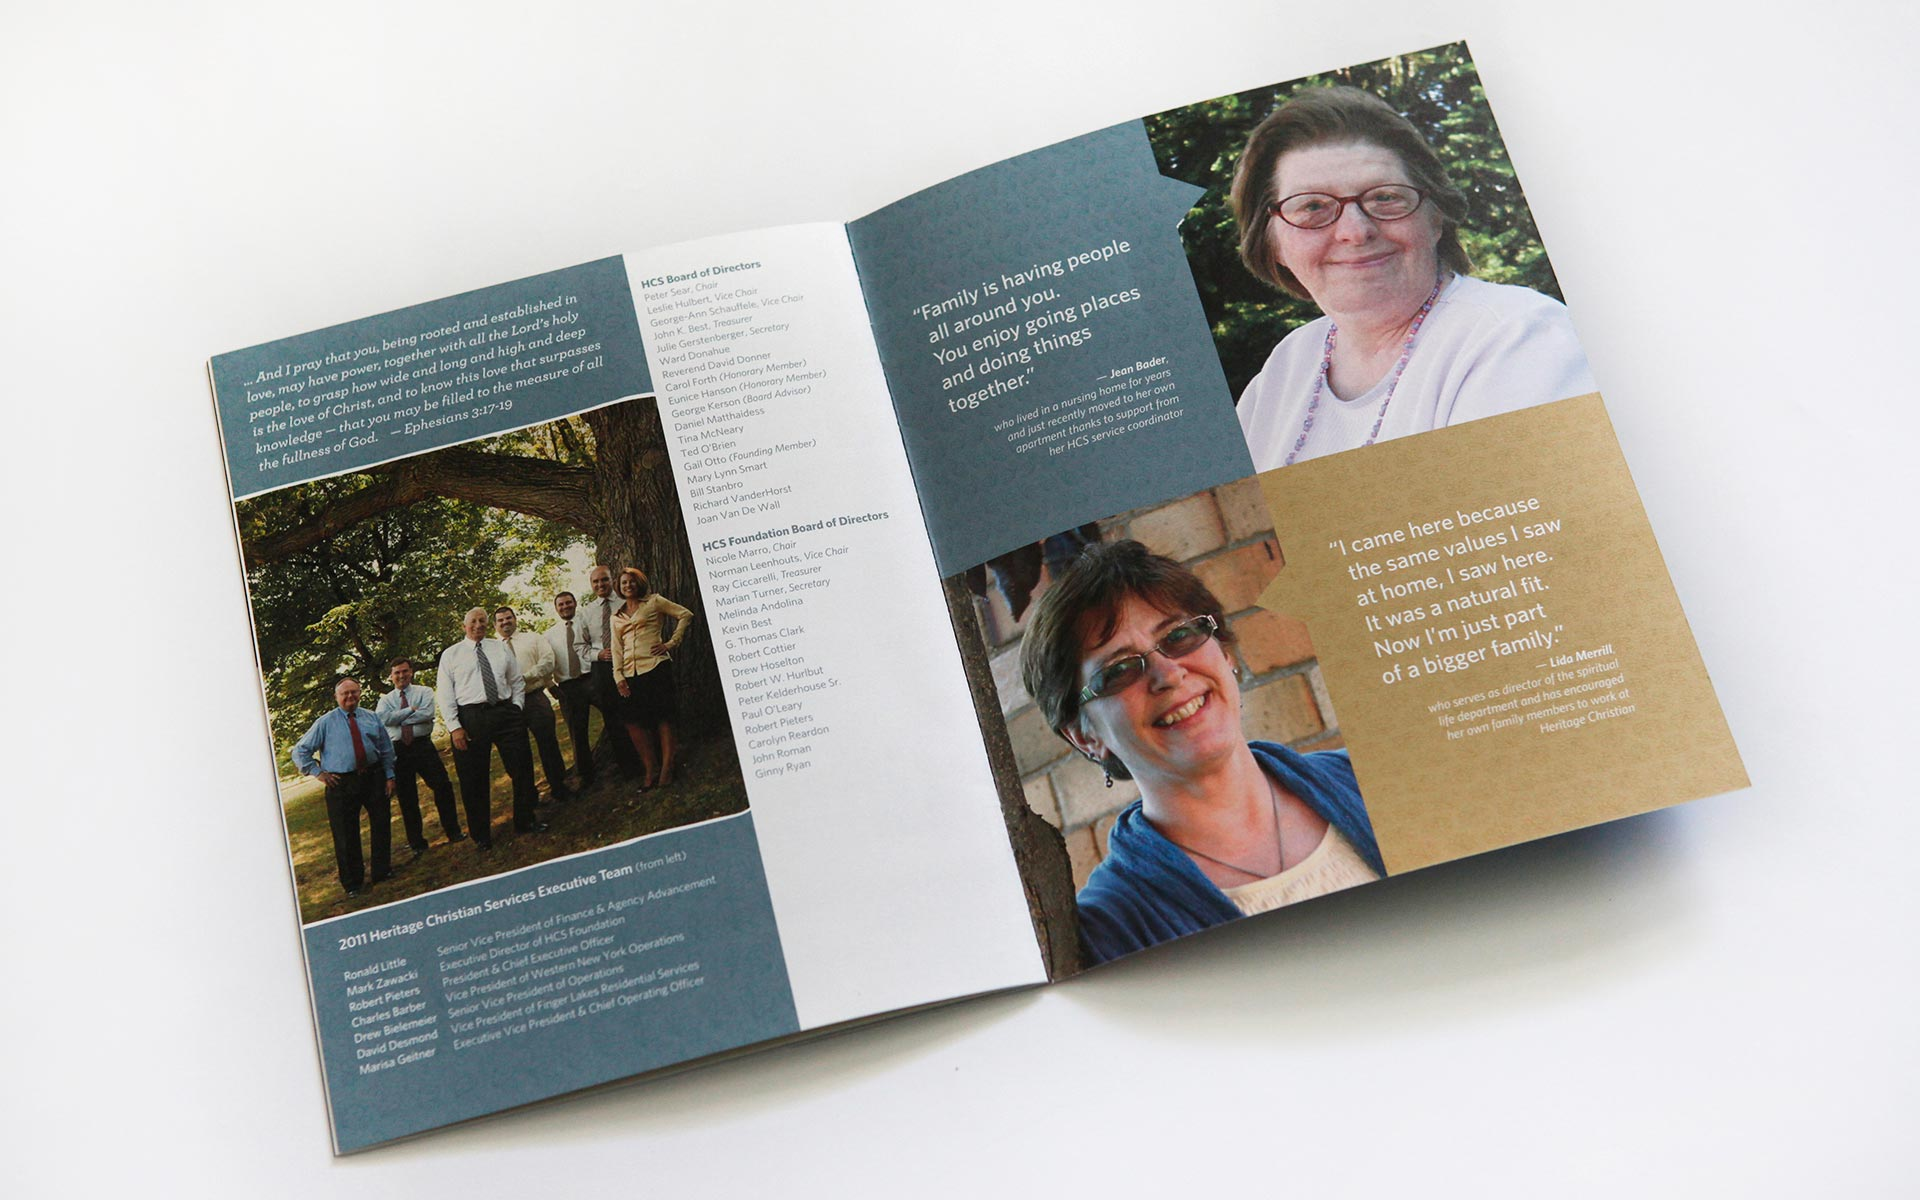 Editorial Work: Heritage Christian Services